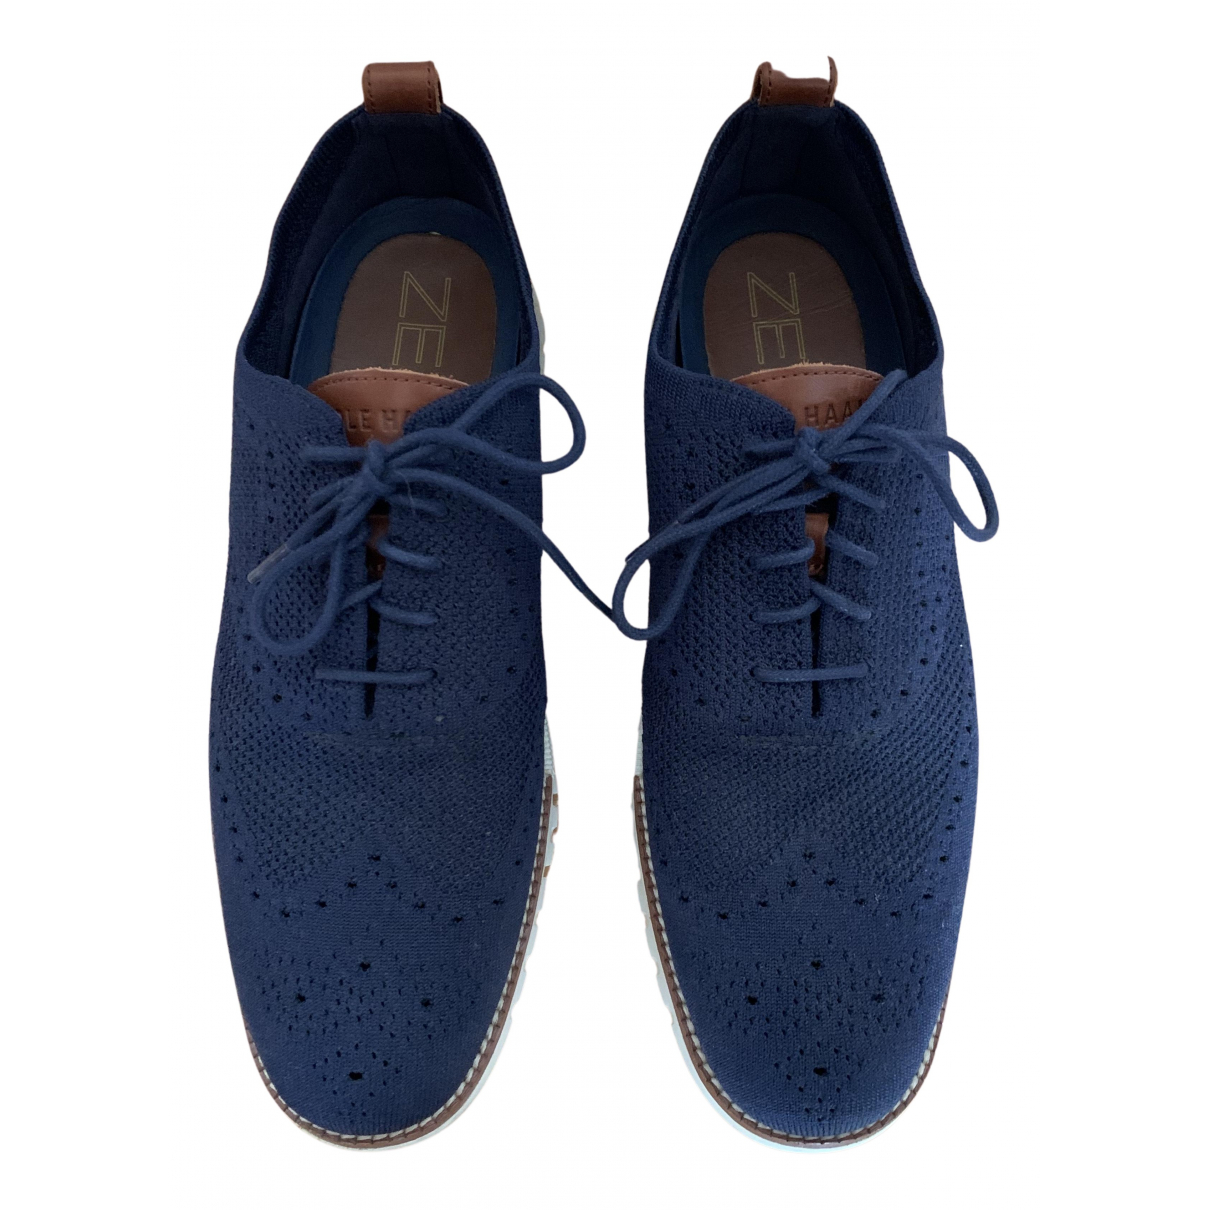 Cole Haan N Navy Leather Flats for Men 10 US